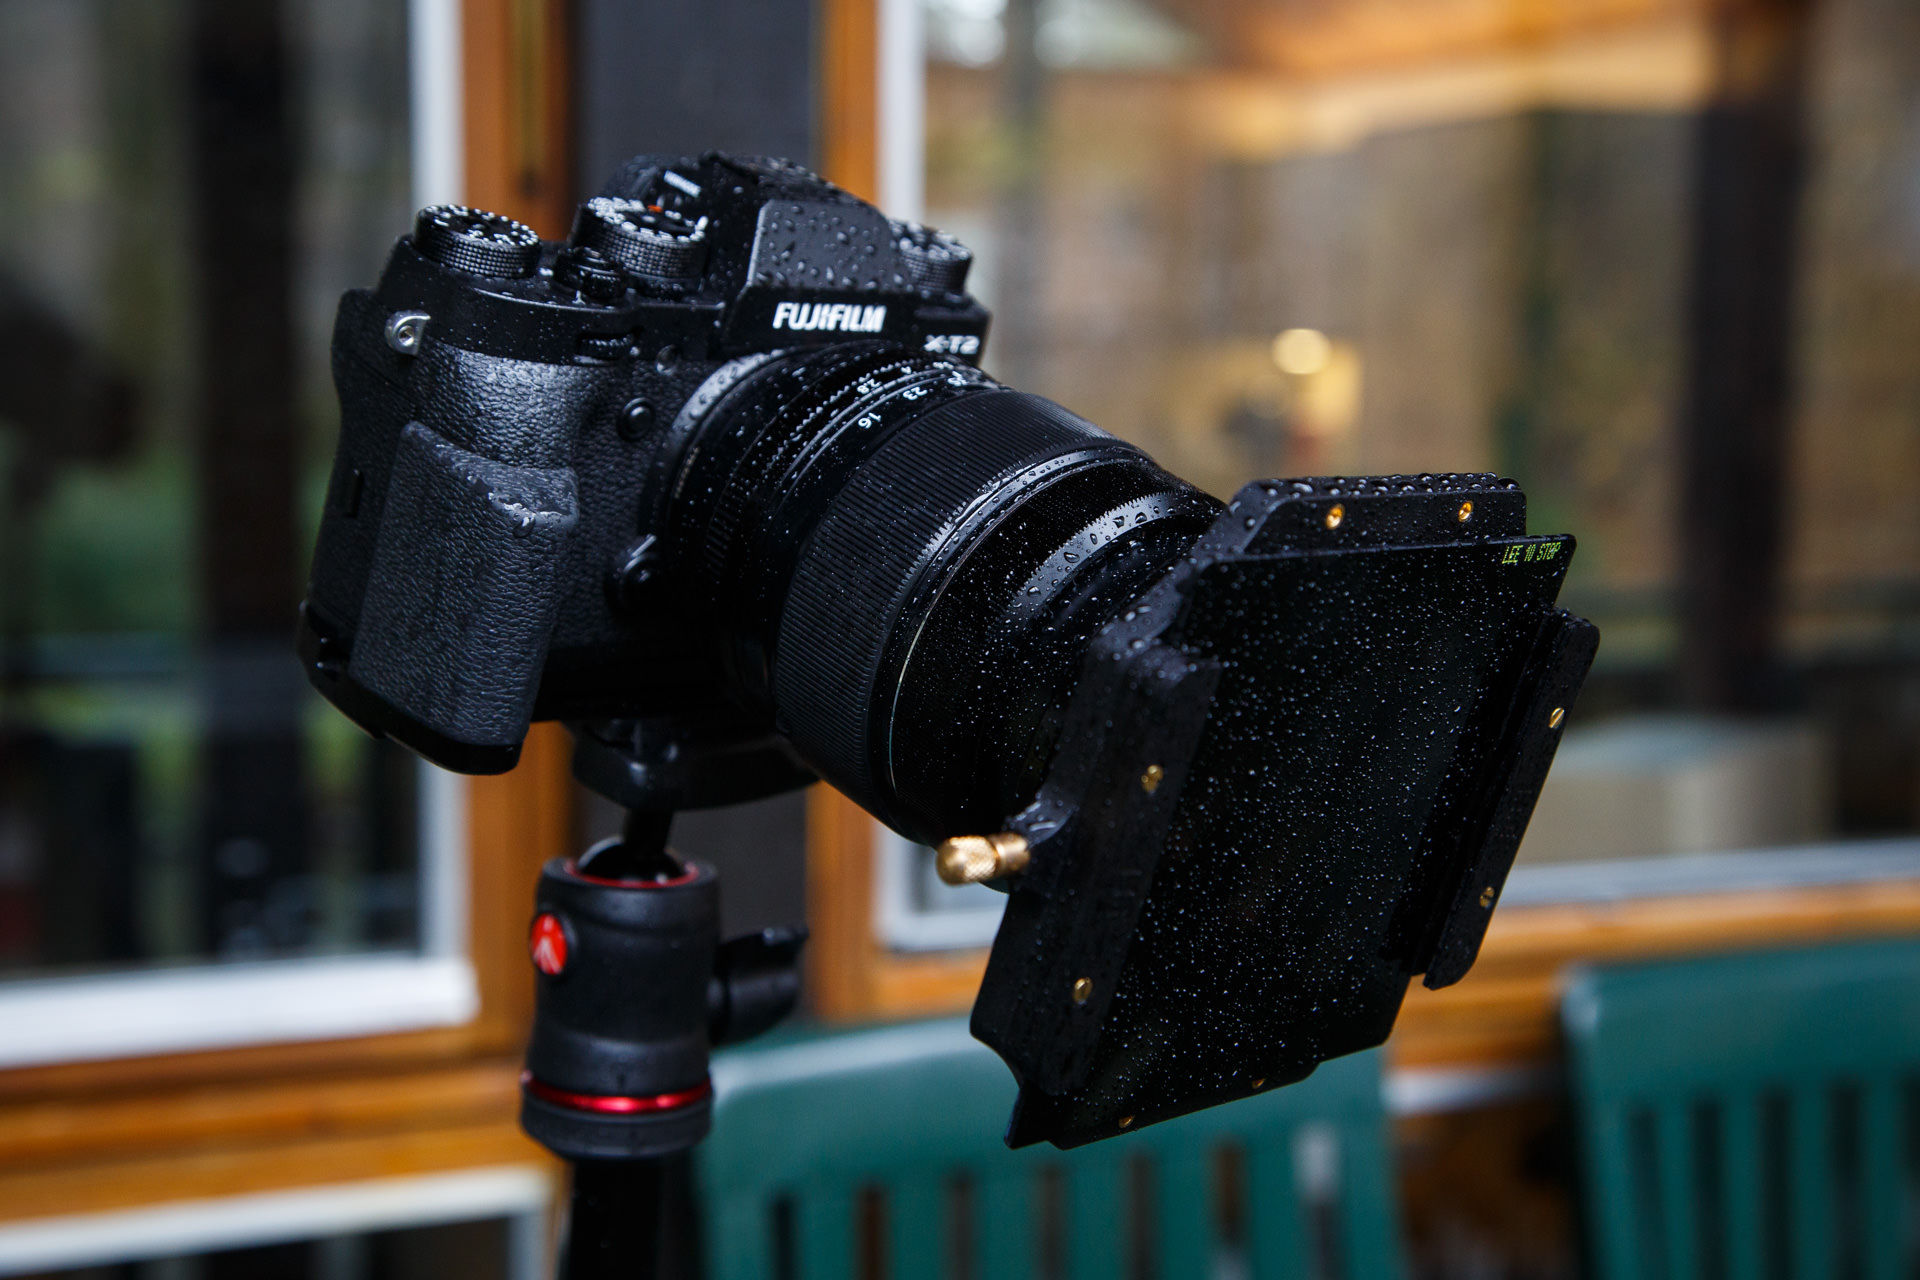 My Fuji X-T2 with the LEE Big Stopper mounted on the front (looking a bit wet!).